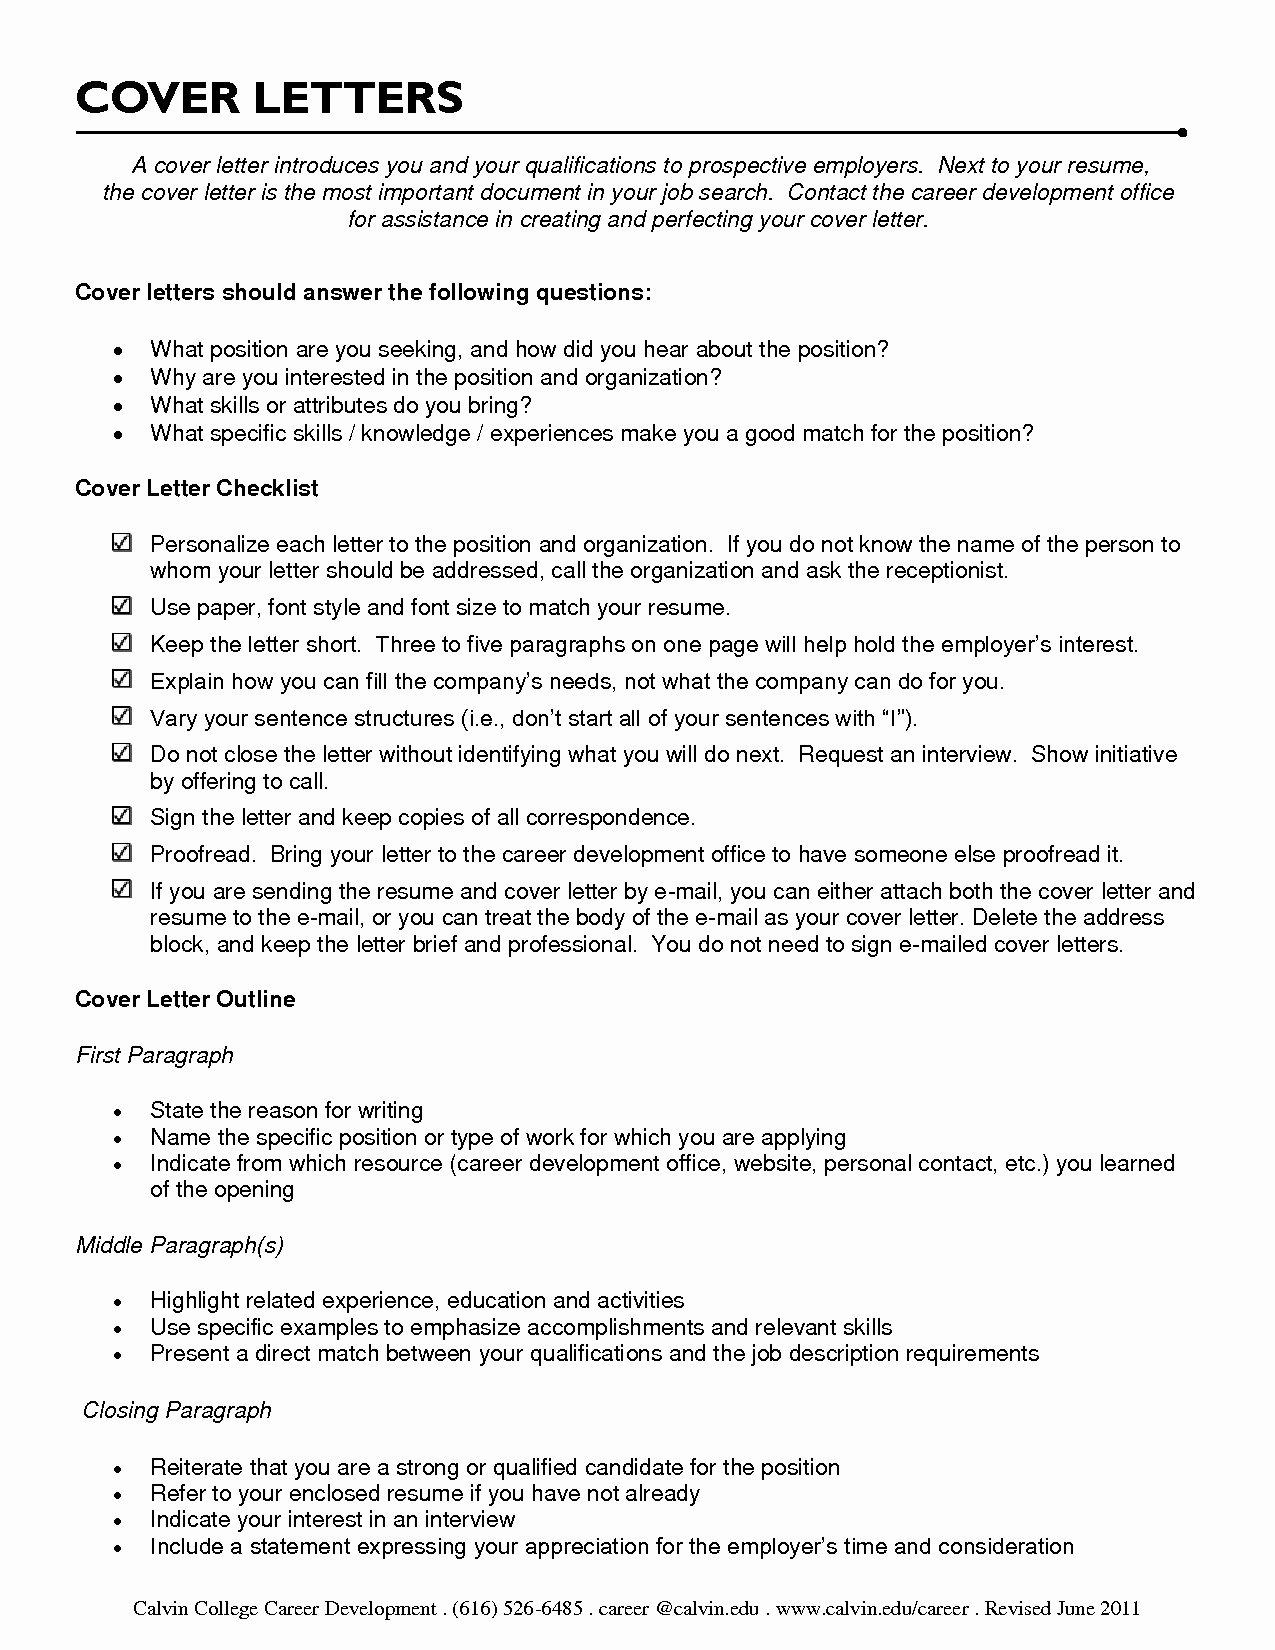 Mental Health Counseling Cover Letter Best solutions